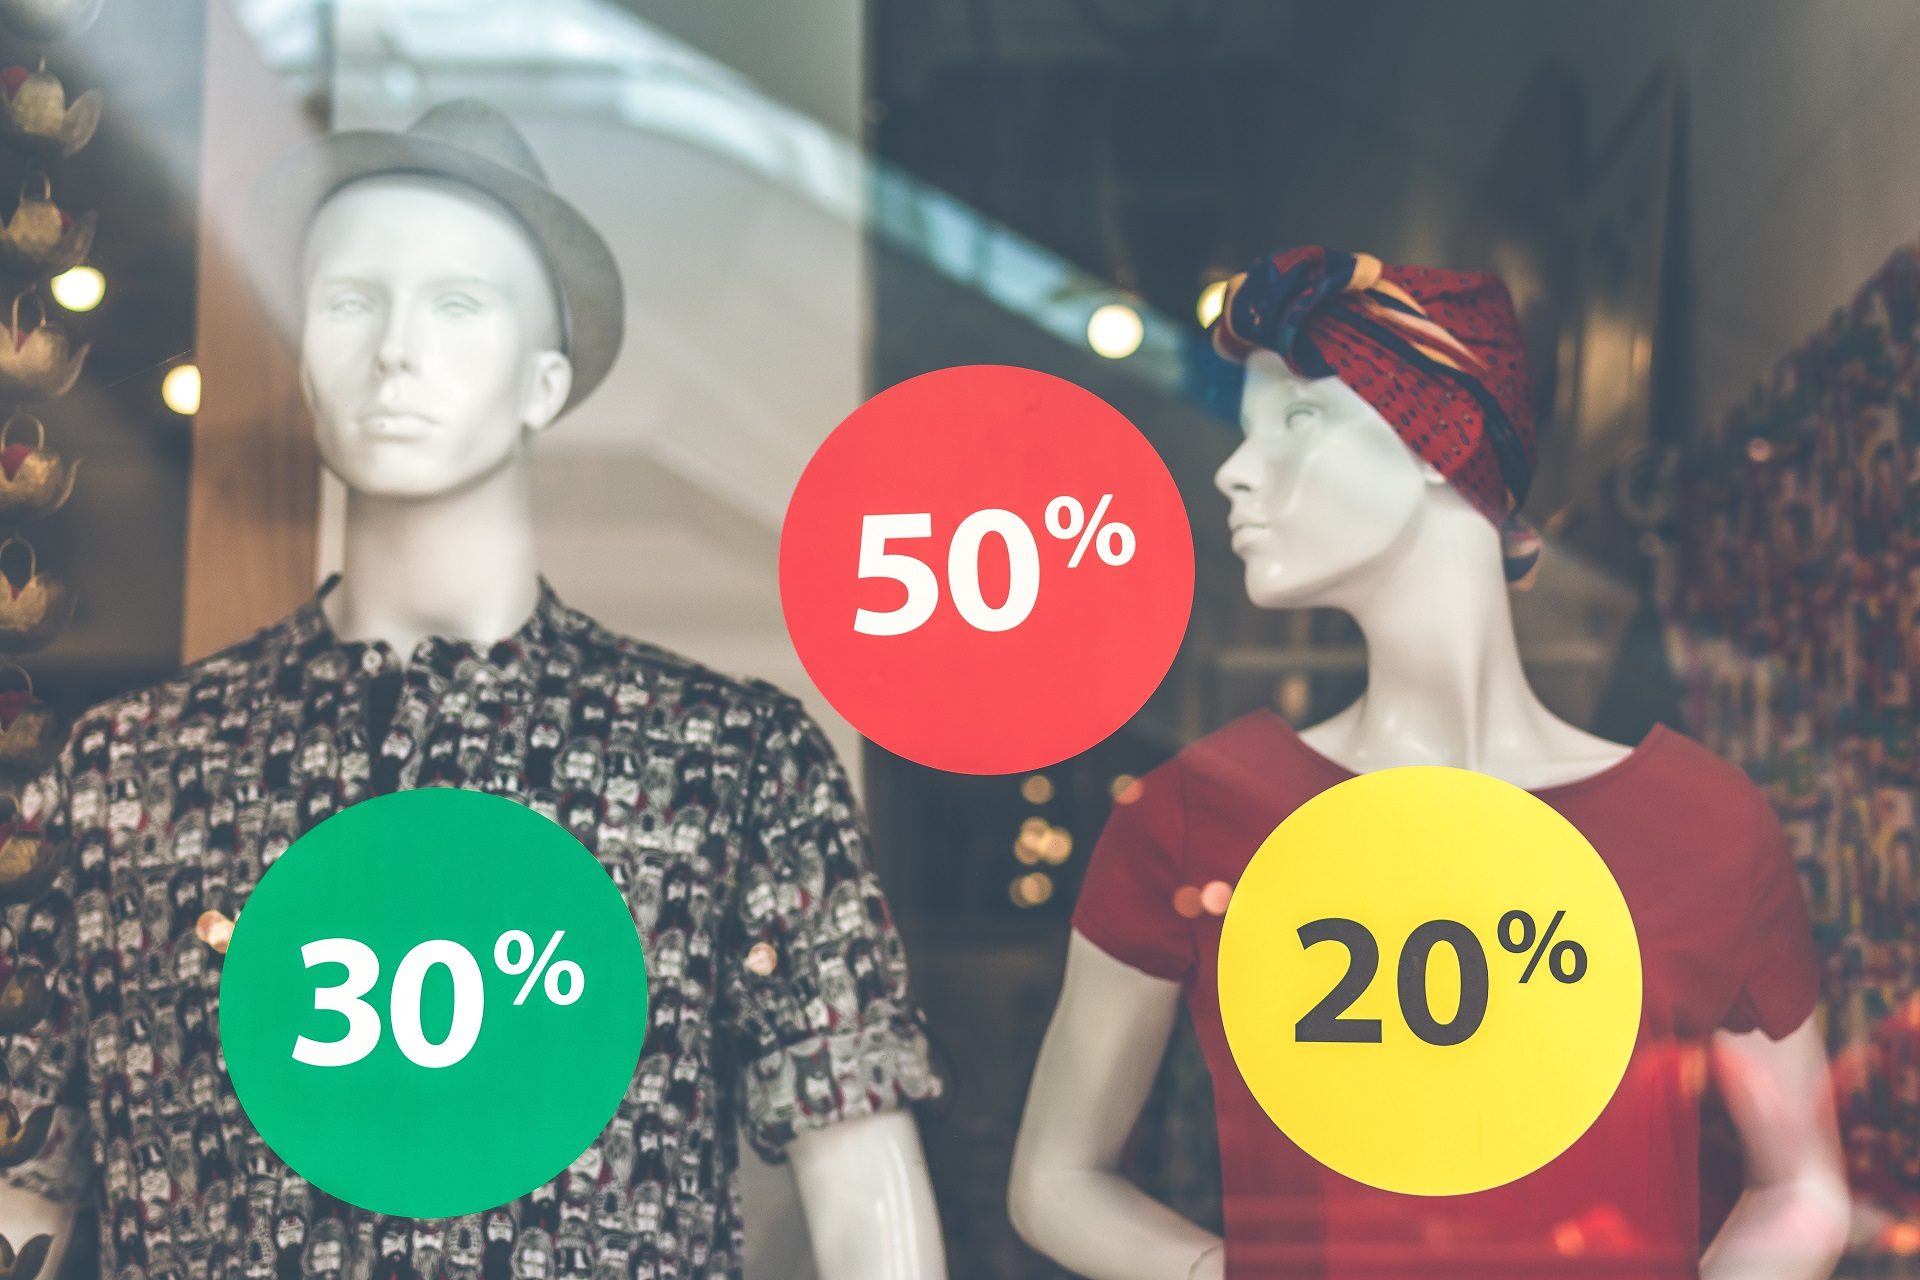 Increasing the Conversion Rate and ROAS for E-Commerce